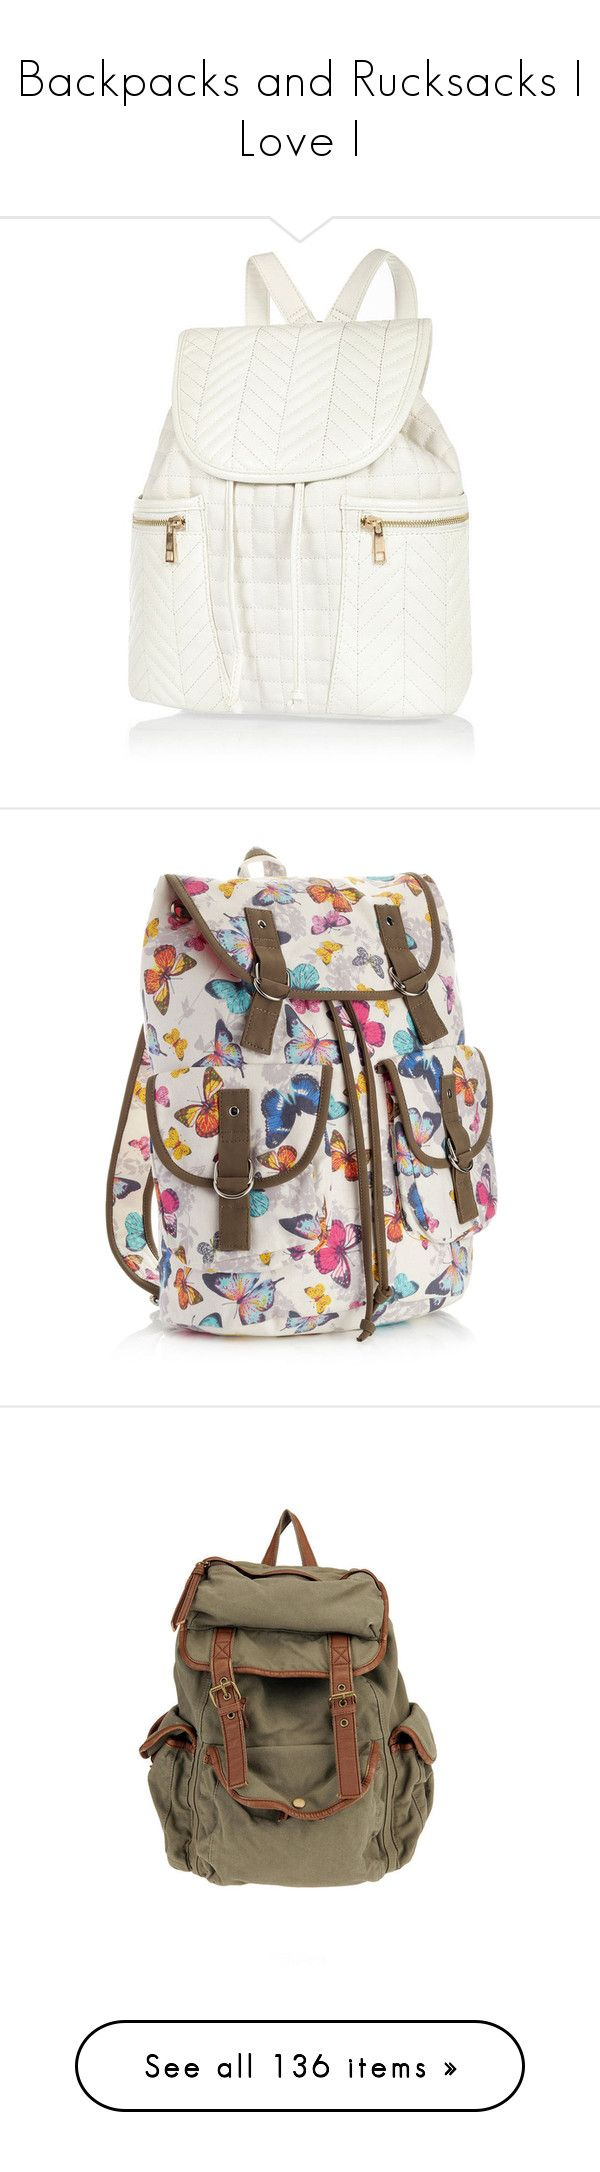 """""""Backpacks and Rucksacks I Love I"""" by nessiecullen2286 ❤ liked on Polyvore featuring bags, backpacks, backpack, sale, drawstring backpack bag, faux leather drawstring backpack, drawstring backpack, strap backpack, river island backpack and accessories"""